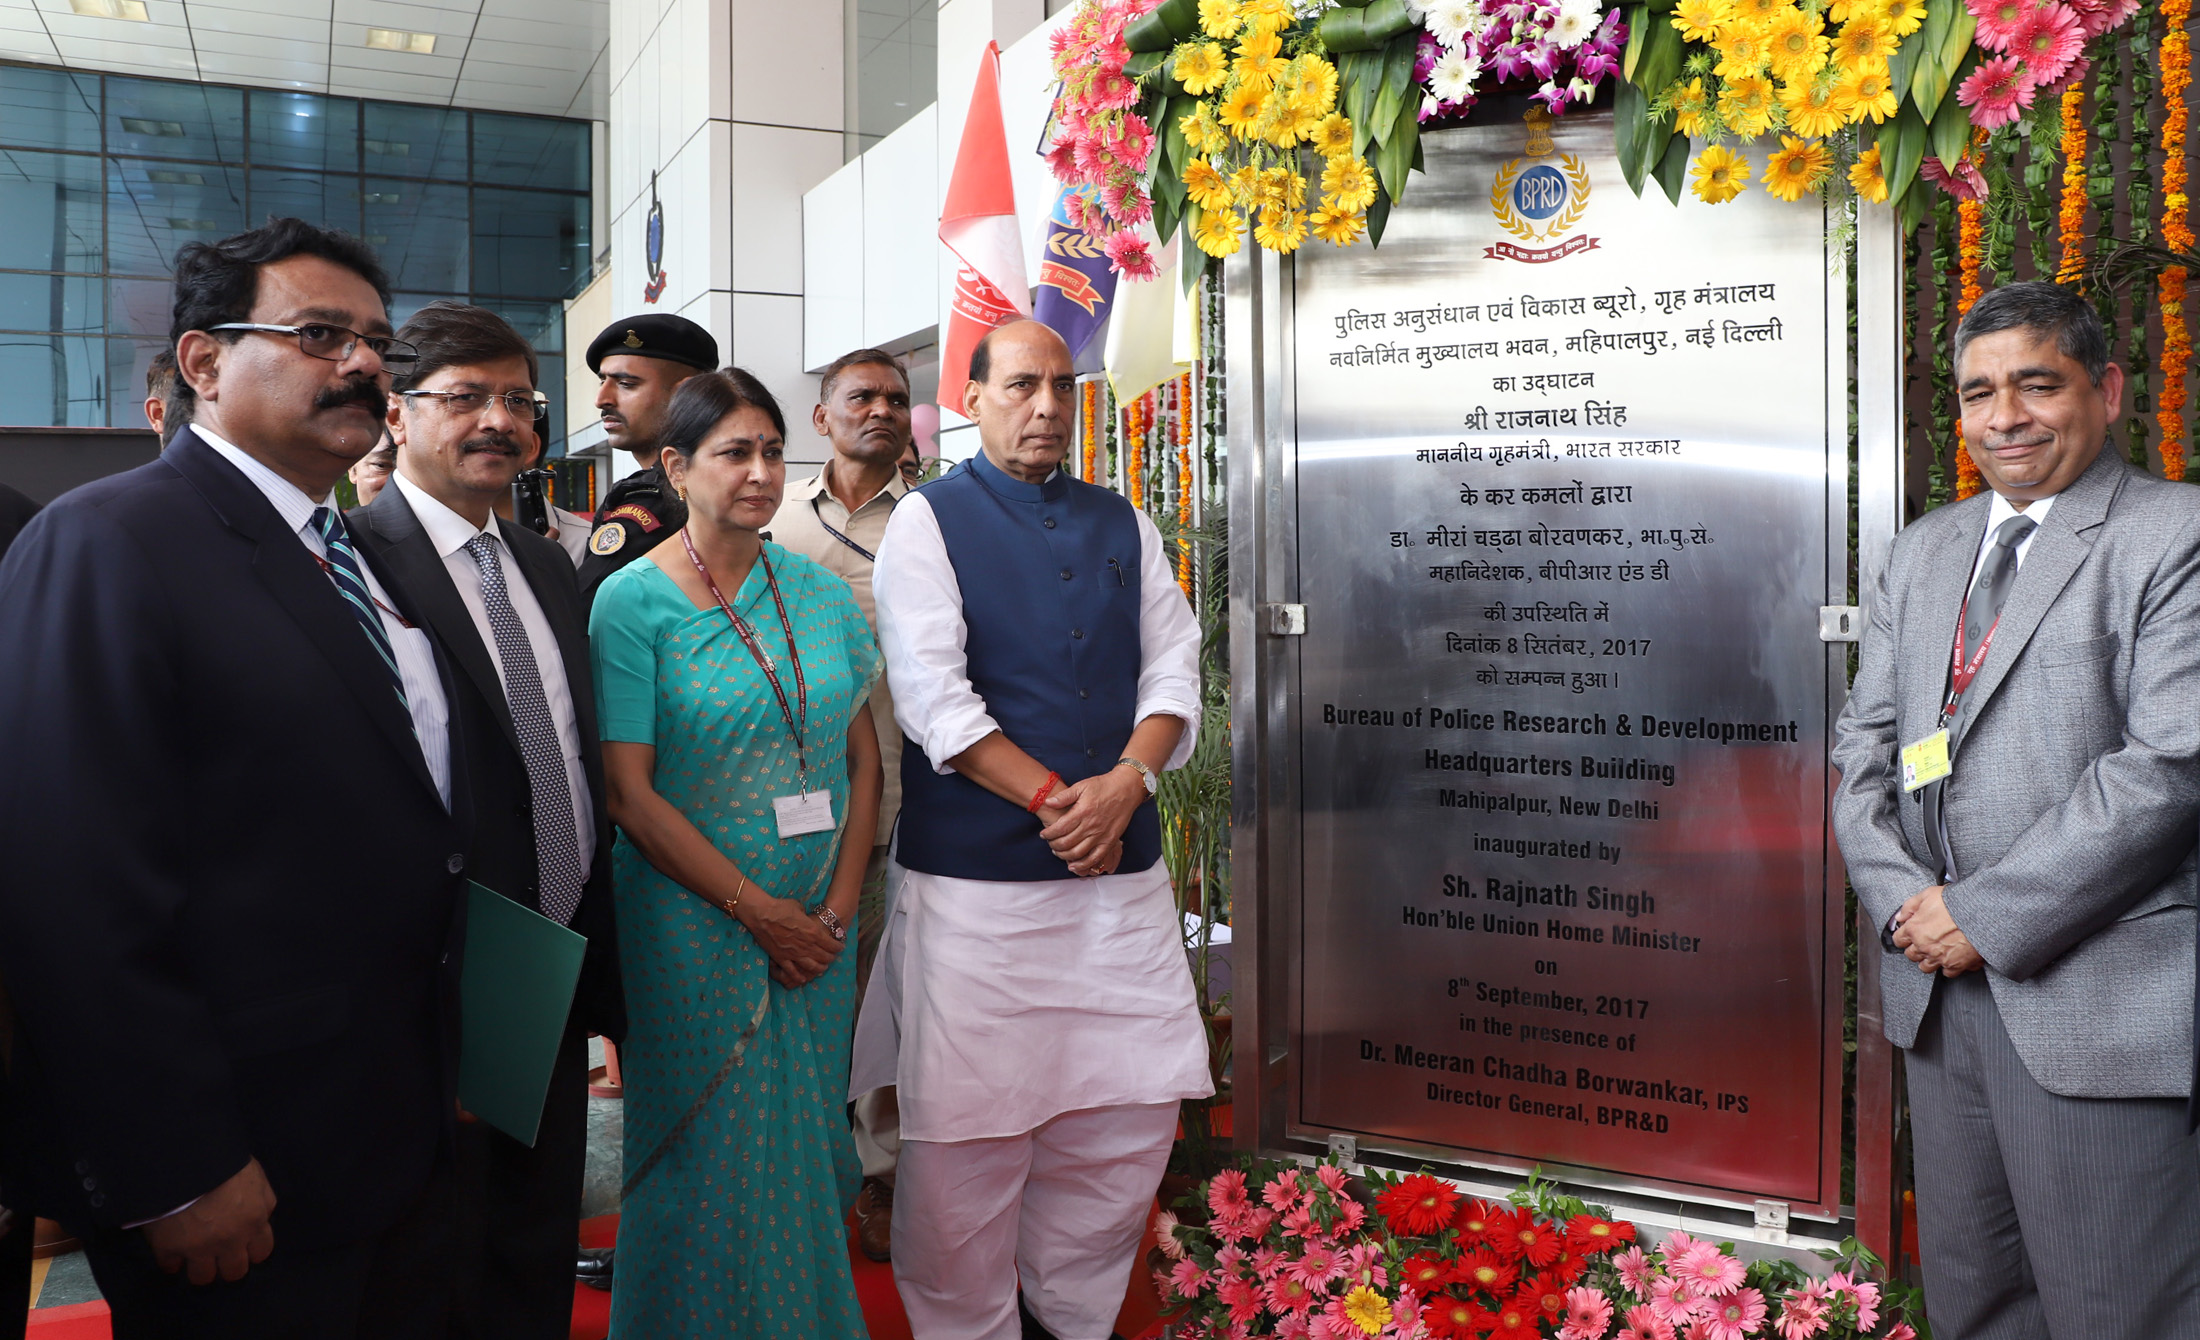 The Union Home Minister, Shri Rajnath Singh inaugurating the new HQs building of Bureau of Police Research and Development (BPR&D), Ministry of Home Affairs, in New Delhi on September 08, 2017. The DG, BPR&D, Dr. M.C. Borwankar is also seen.